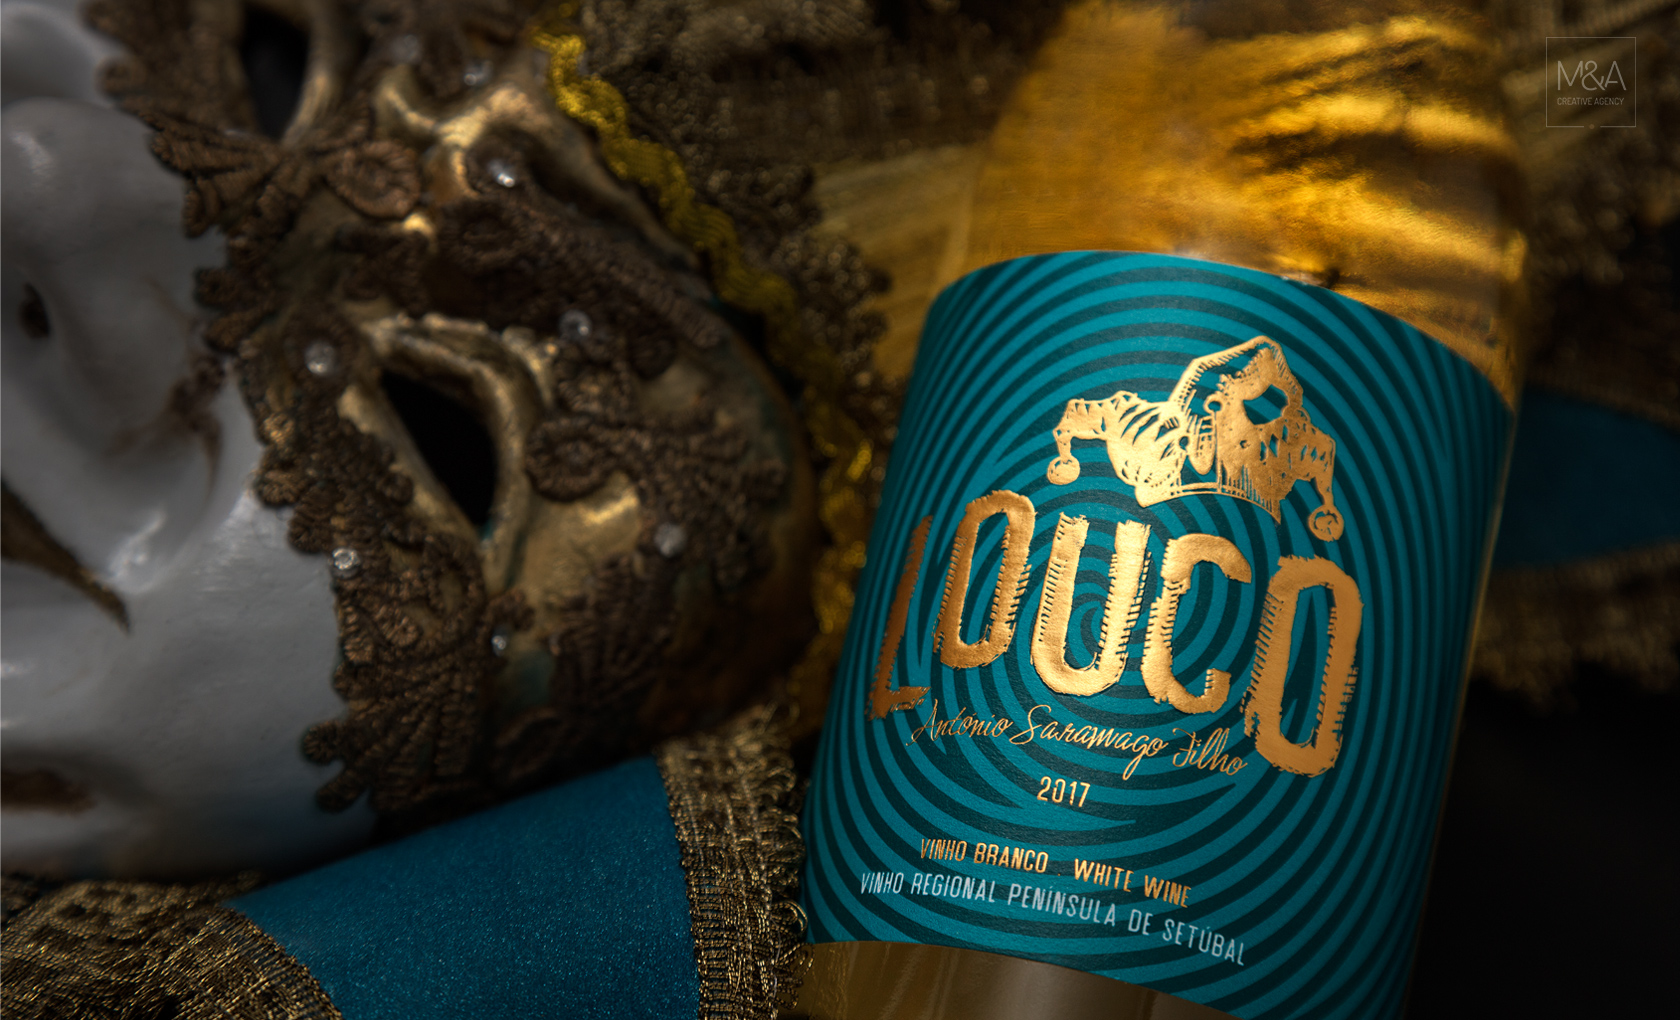 """""""Louco"""" - A Crazy Design For A Wine That Breaks Patterns / World Brand Design Society"""